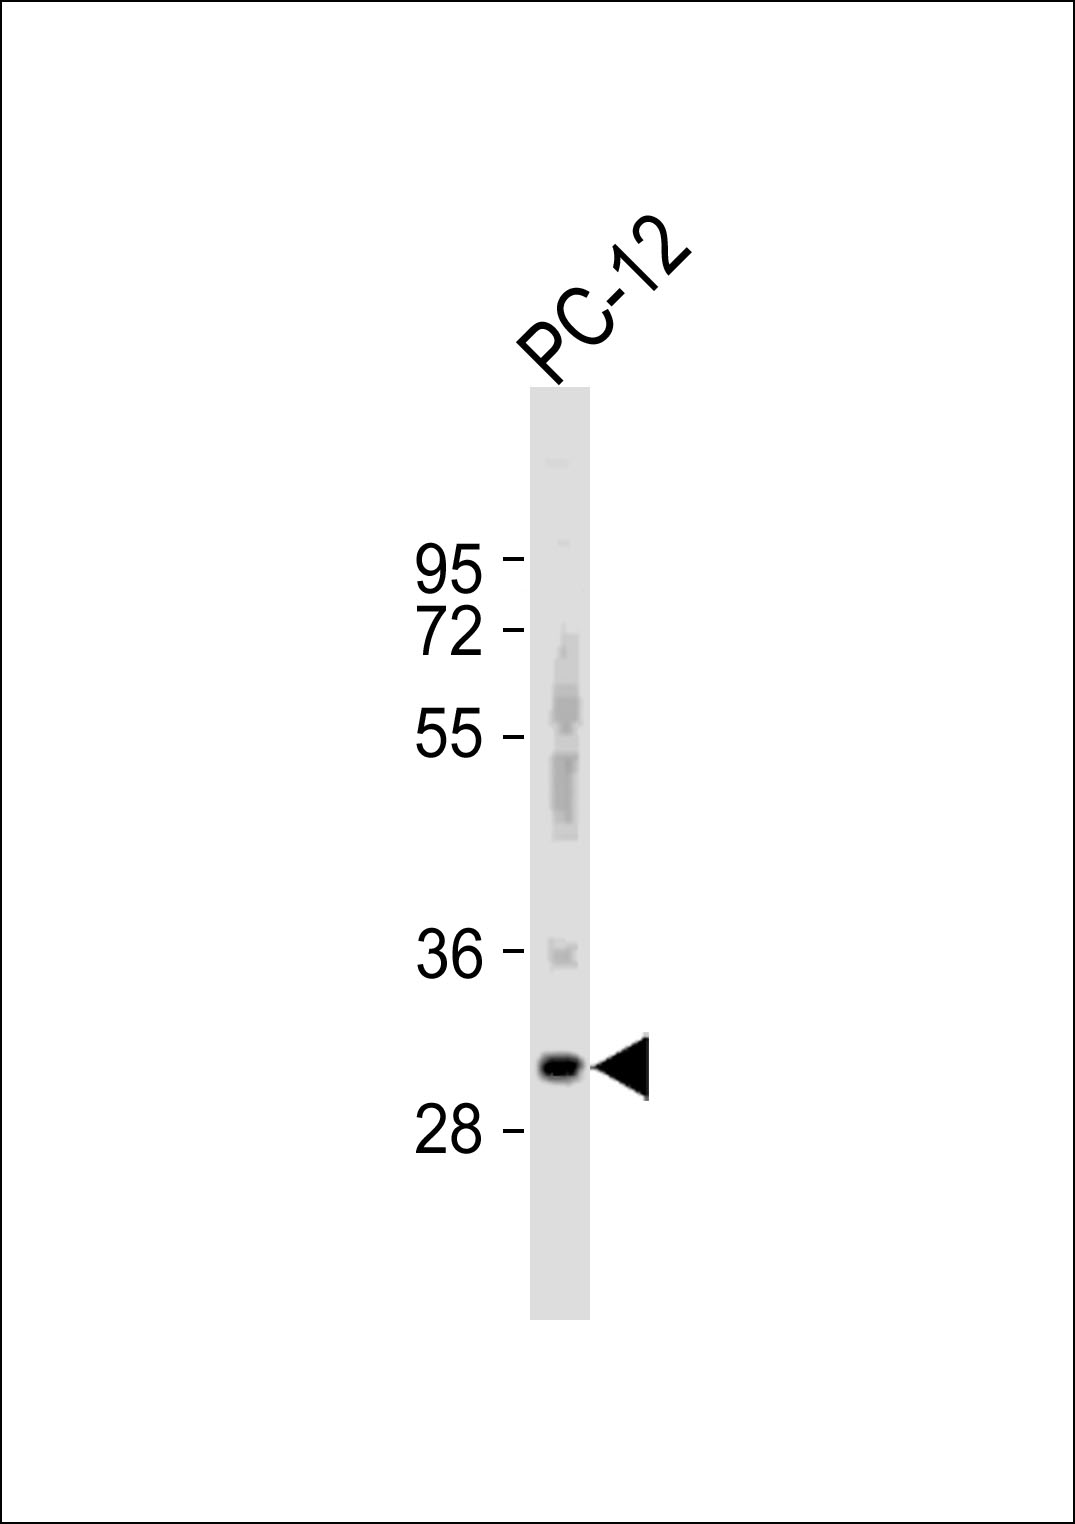 WB - Bcl-2 Antibody (BH3 Domain Specific) AP1303a